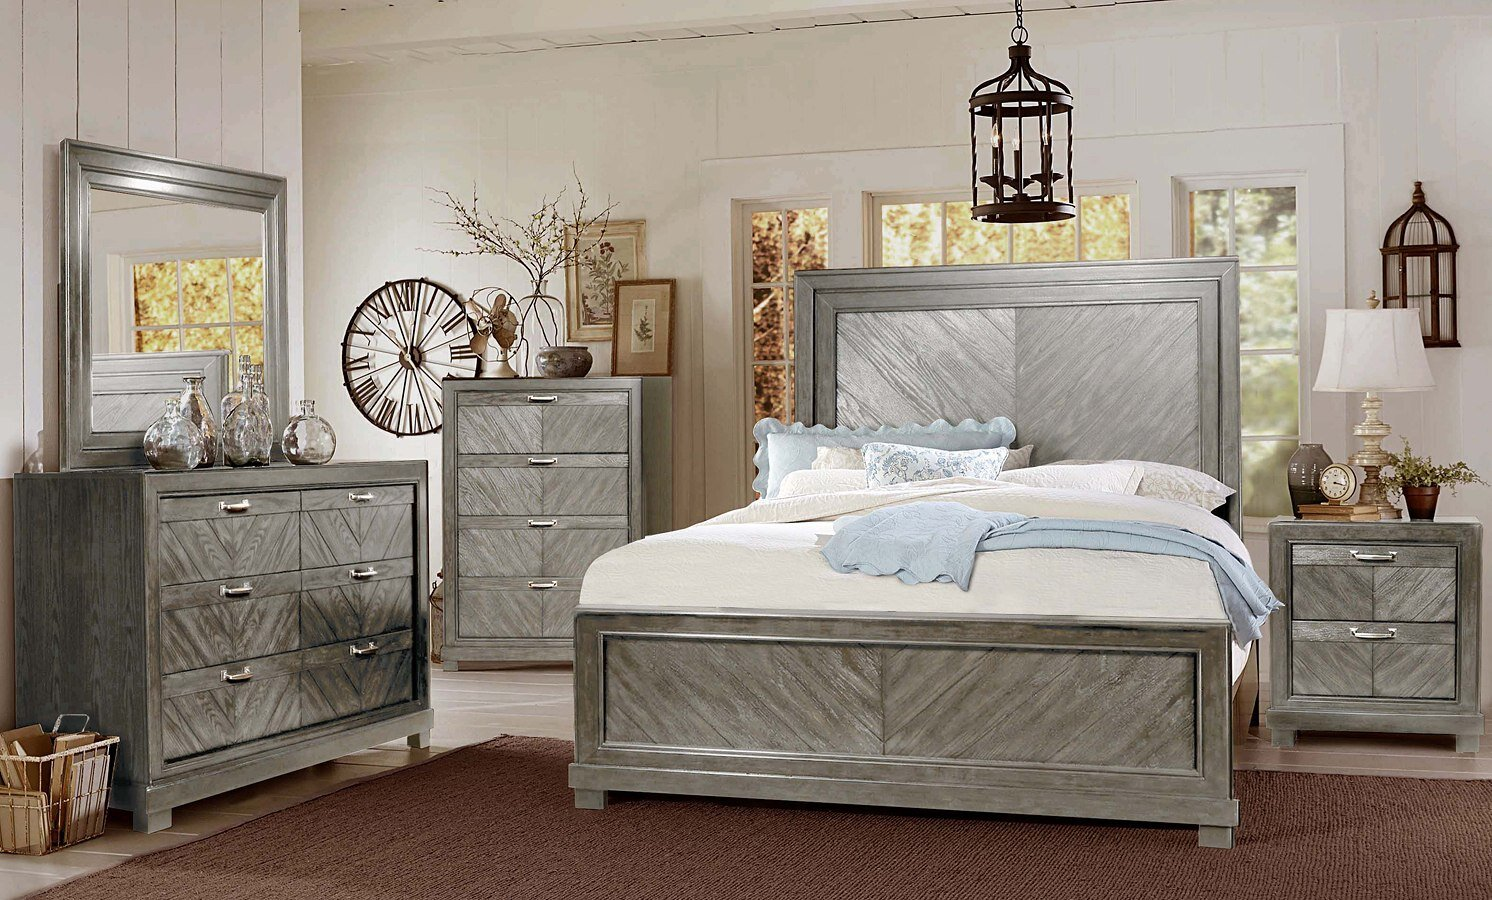 MONTANA BEDROOM COLLECTION AVAILABLE IN A KING BED, DRESSER AND NIGHTSTANDS